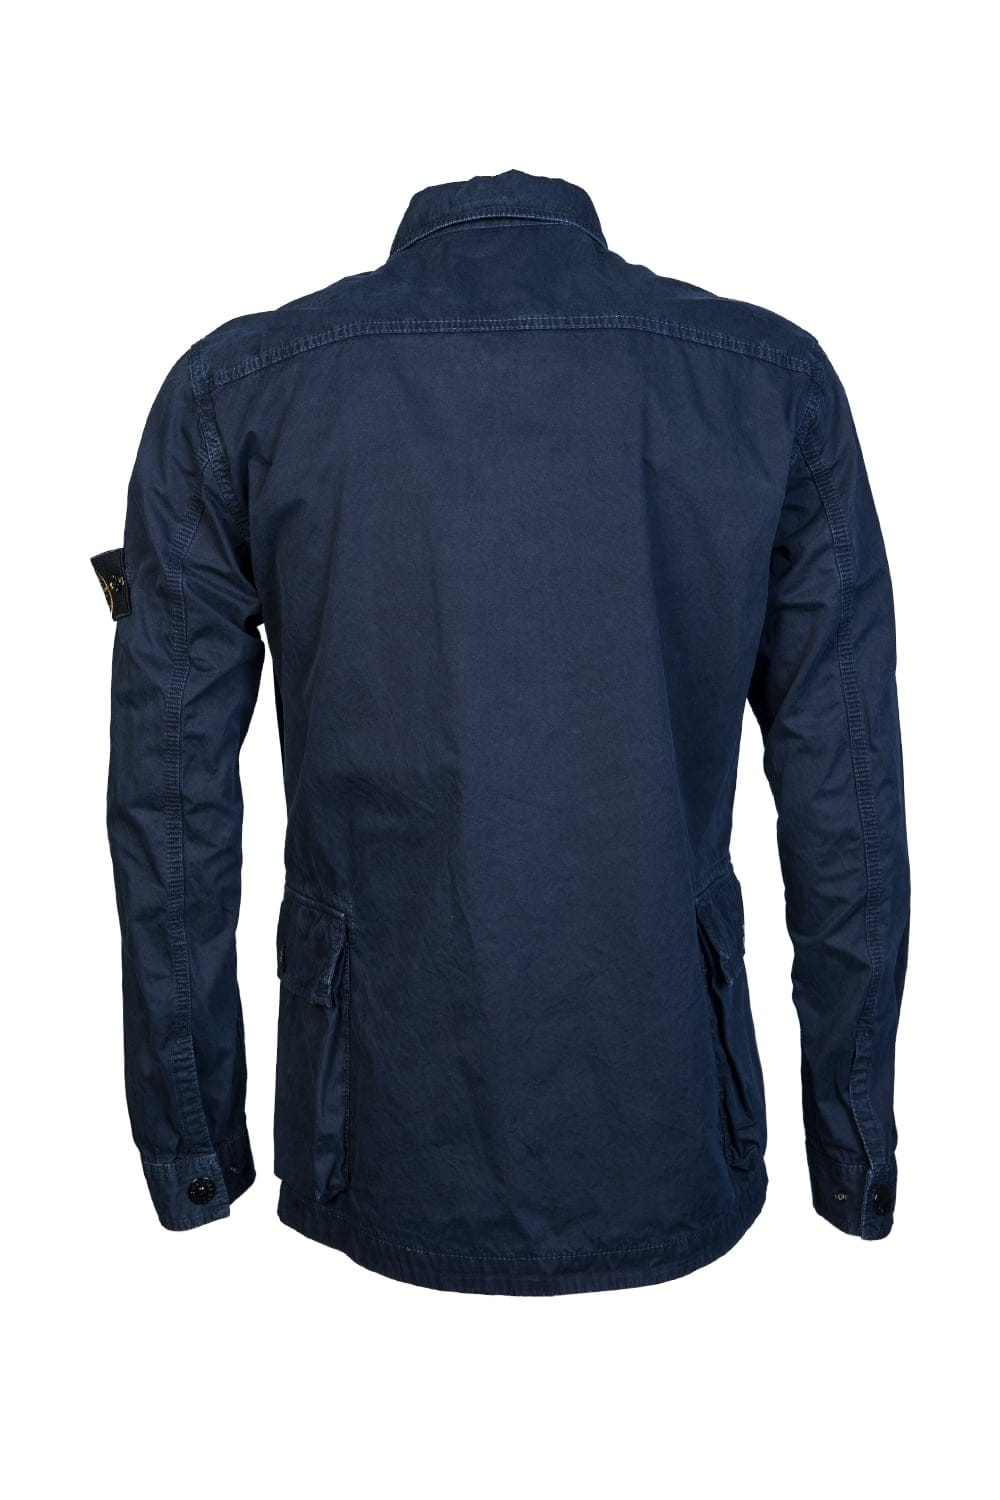 stone island jacket 6615119wn stone island from sage clothing uk. Black Bedroom Furniture Sets. Home Design Ideas